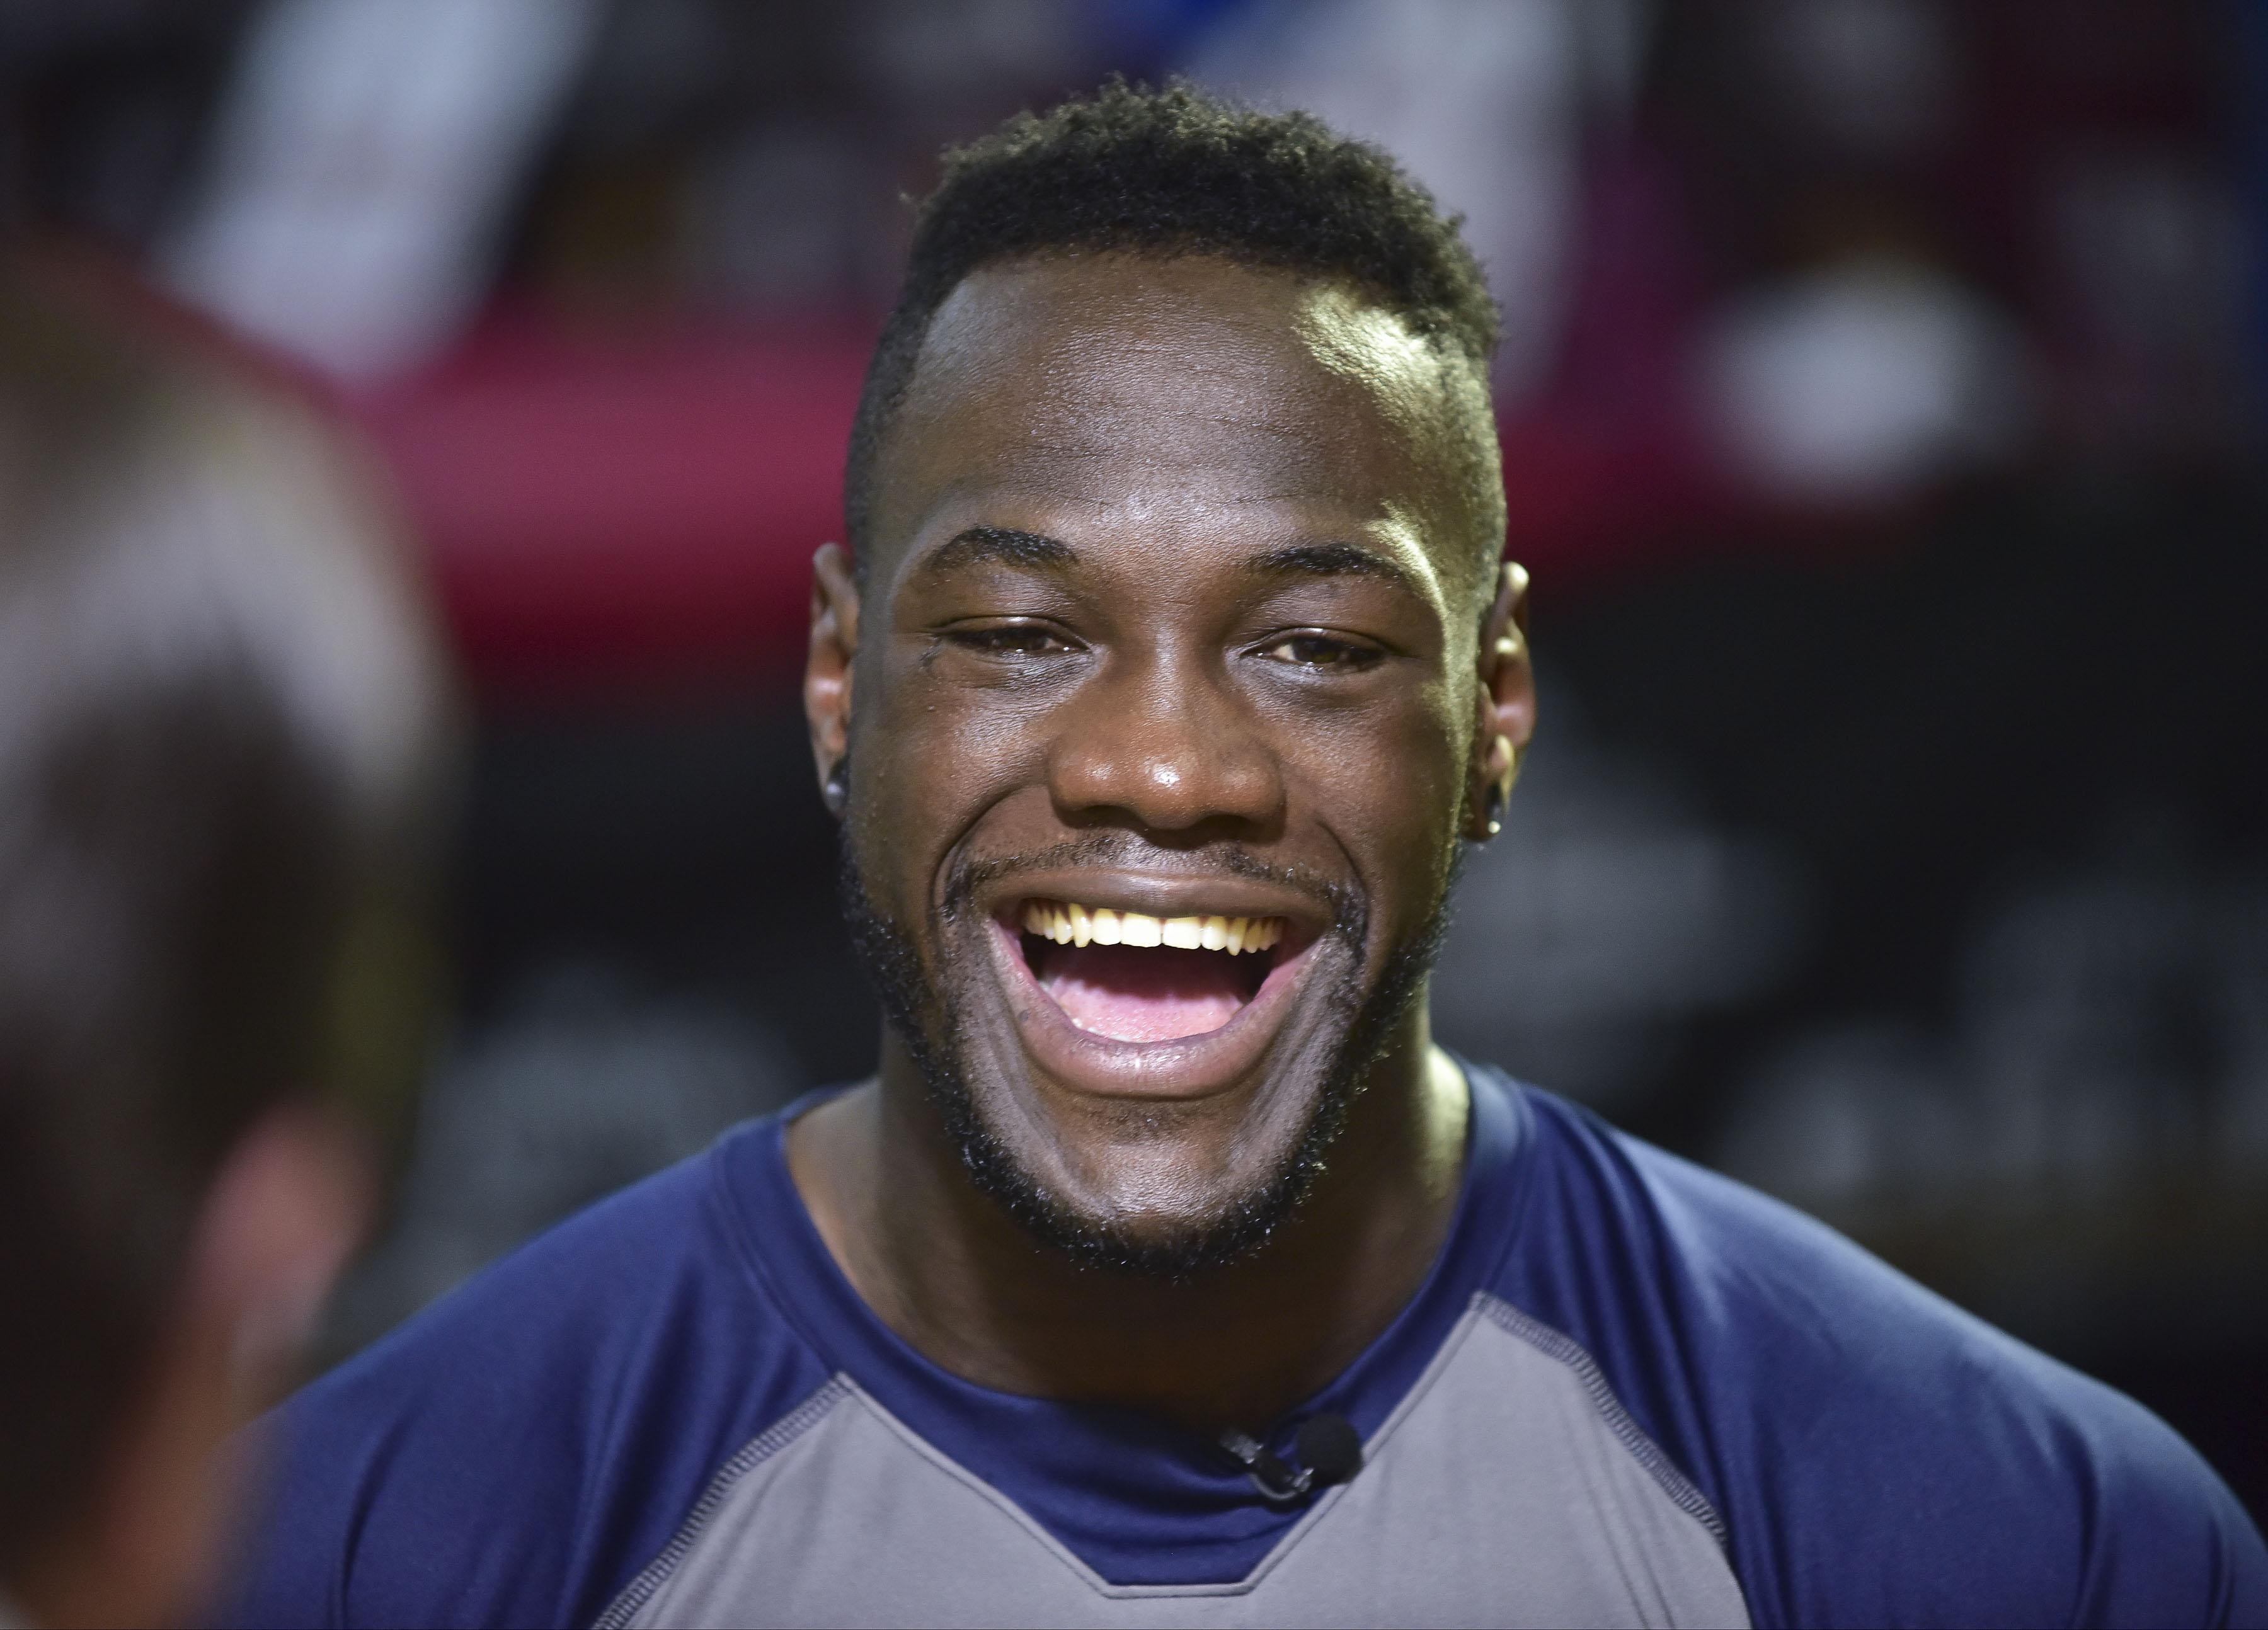 Deontay Wilder: Deontay Wilder's Ride With No Limits